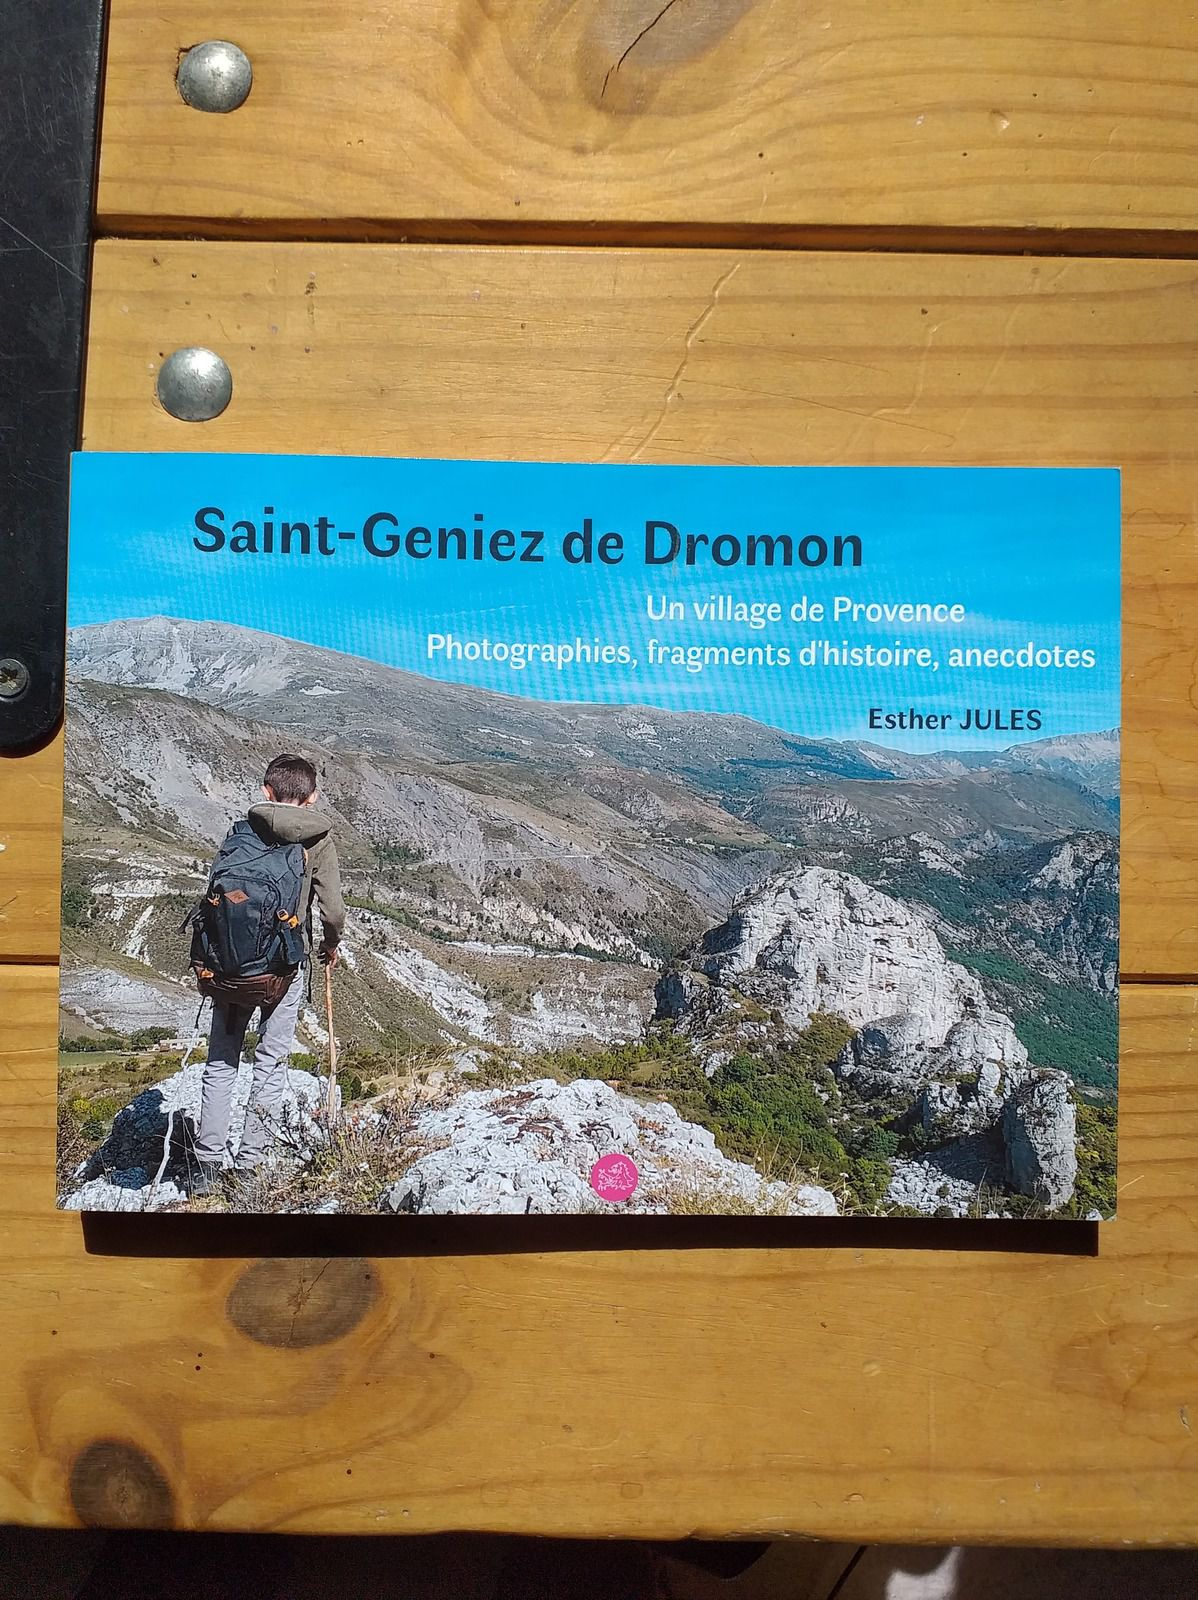 Saint-Geniez de Dromon de Esther Jules